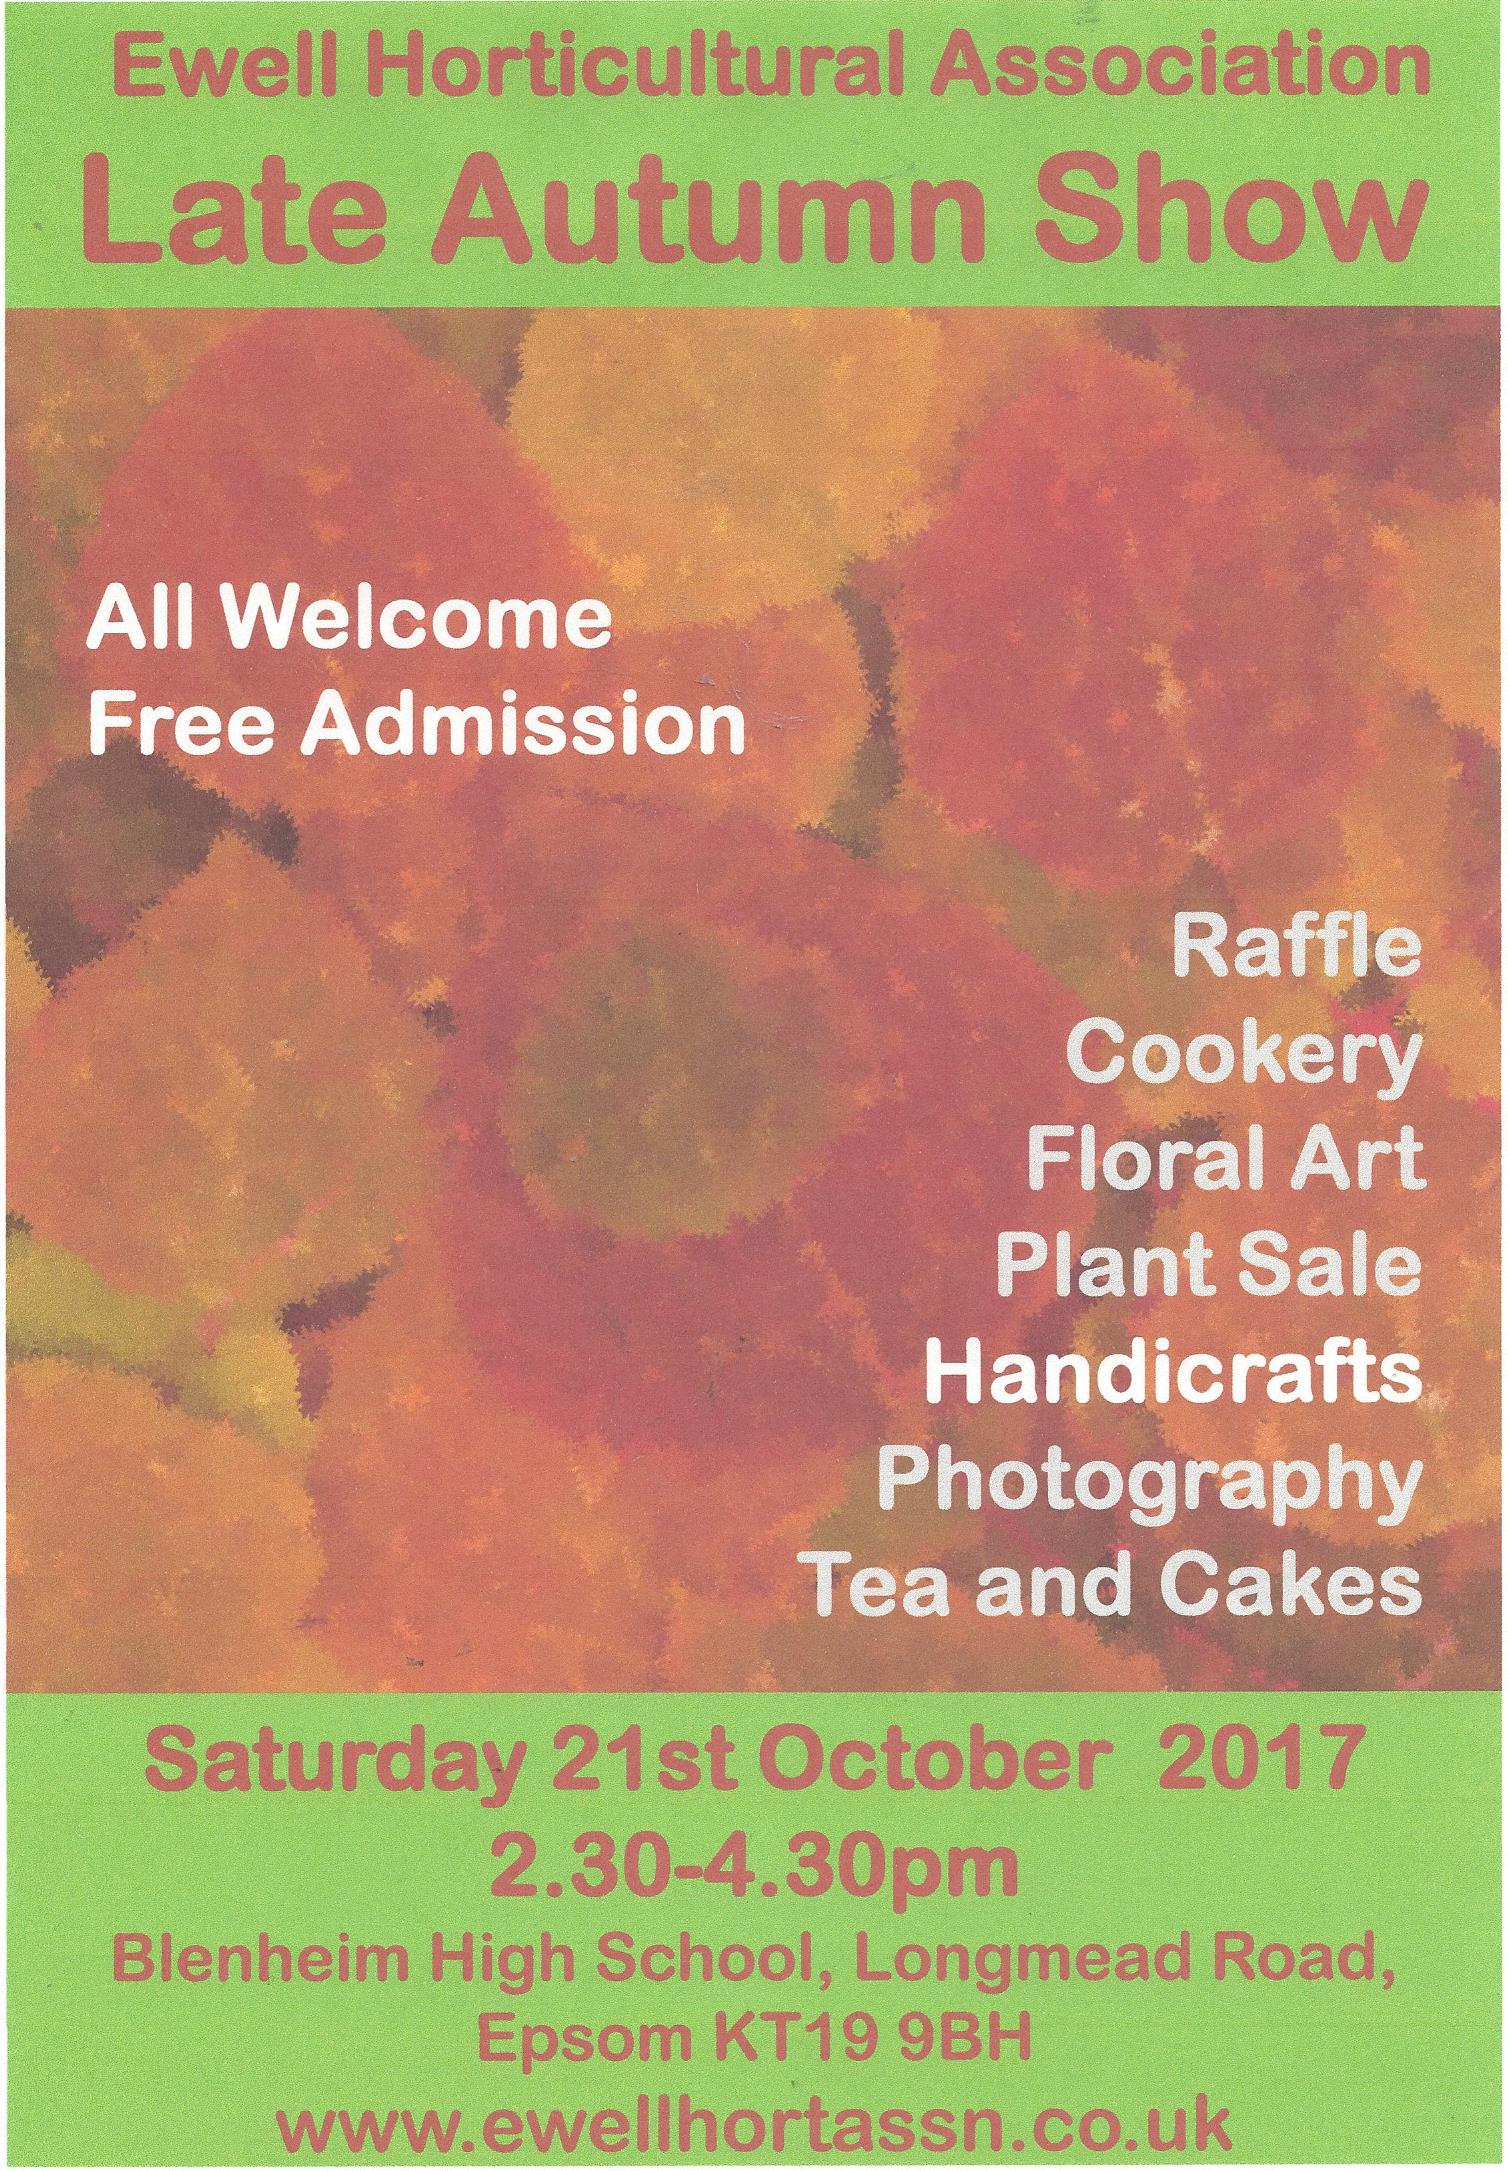 Ewell Horticultural Association's Late Autumn Show